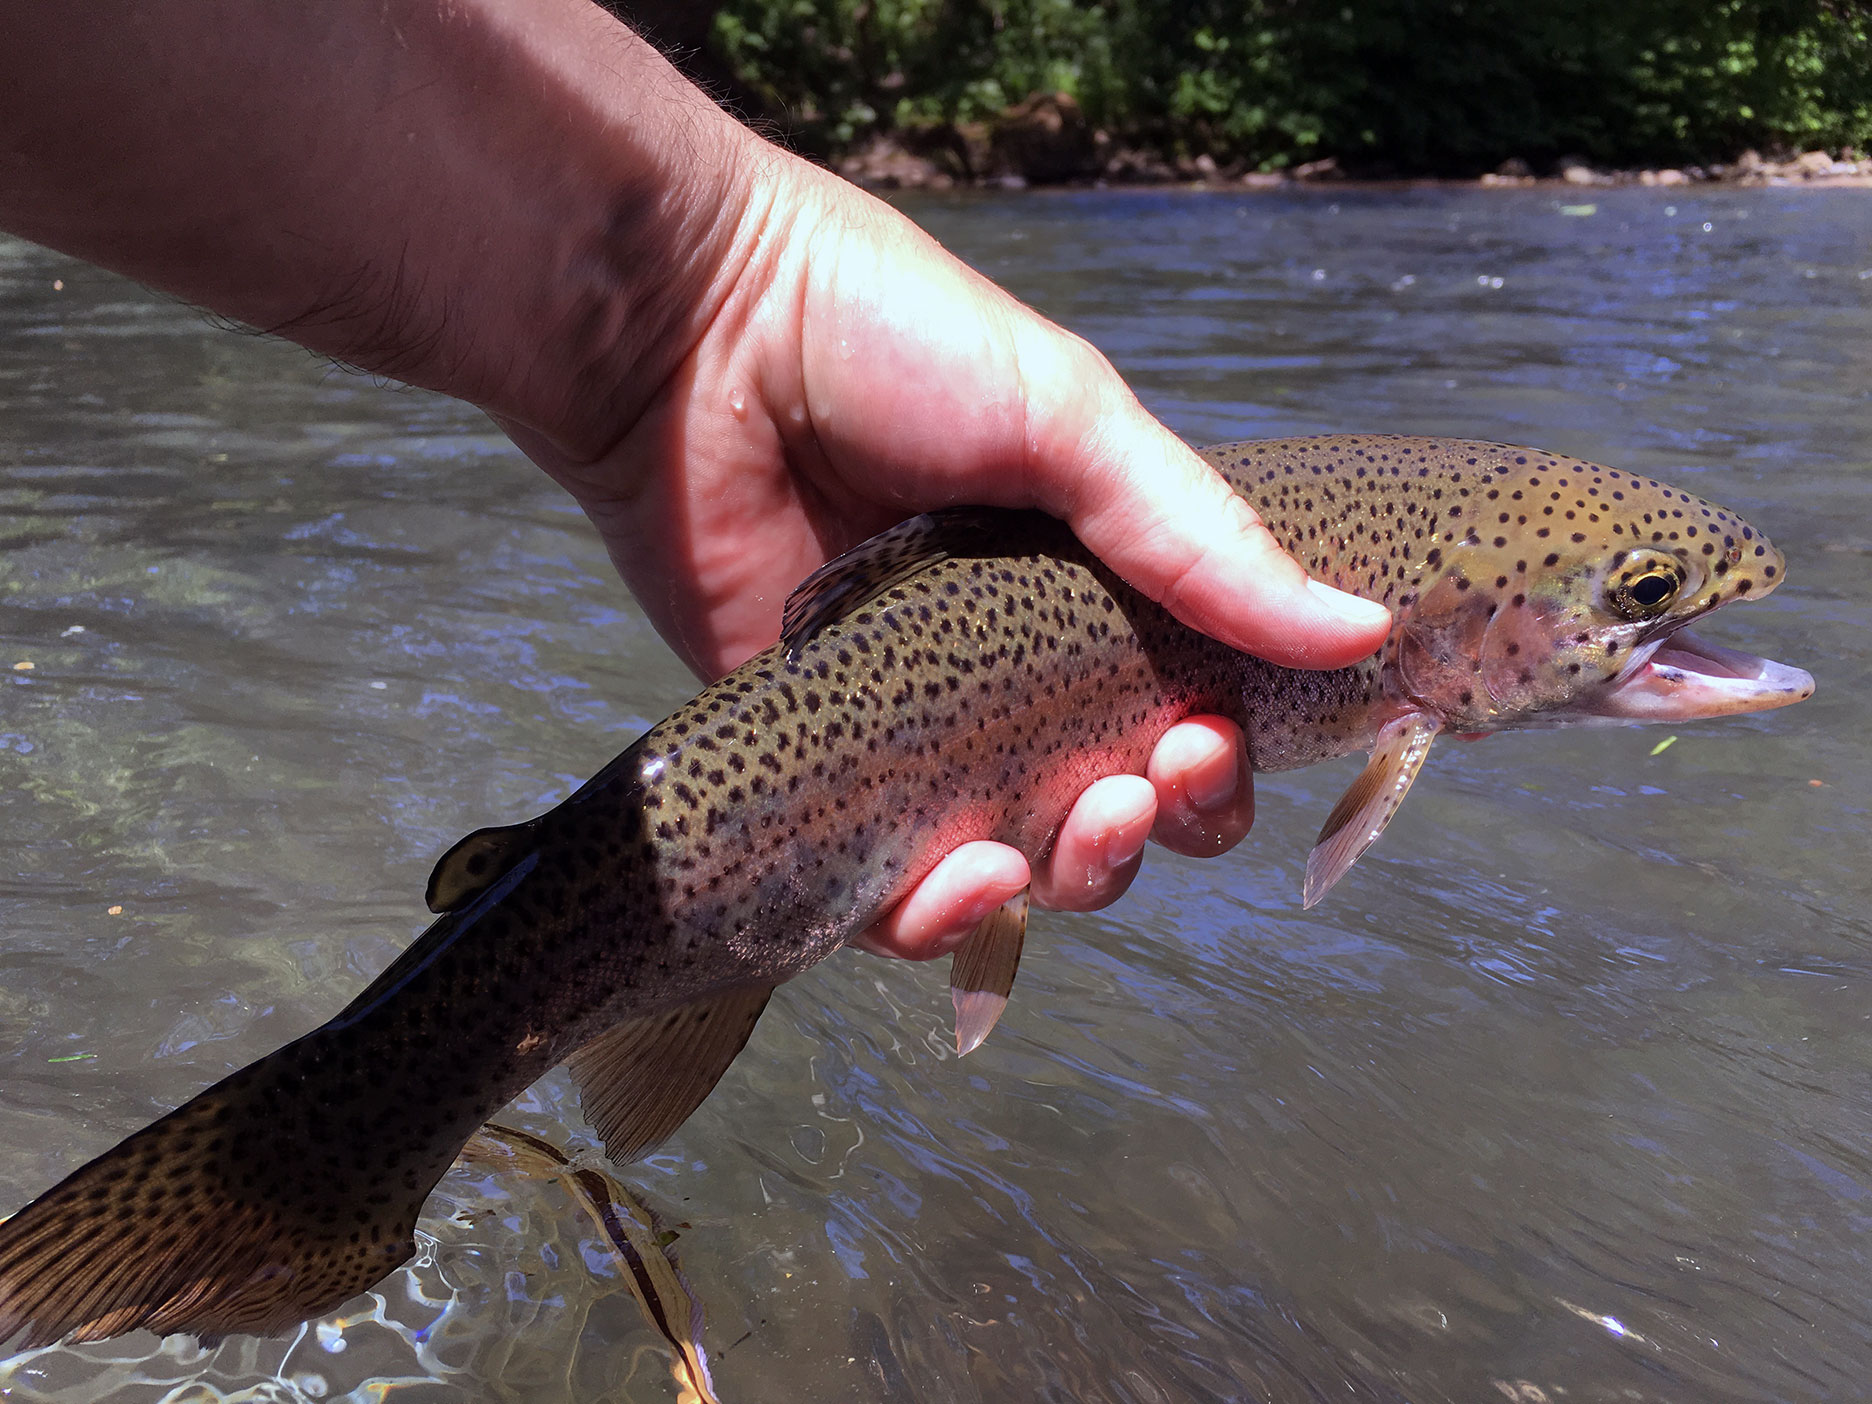 I caught several rainbows in the riffles as well.